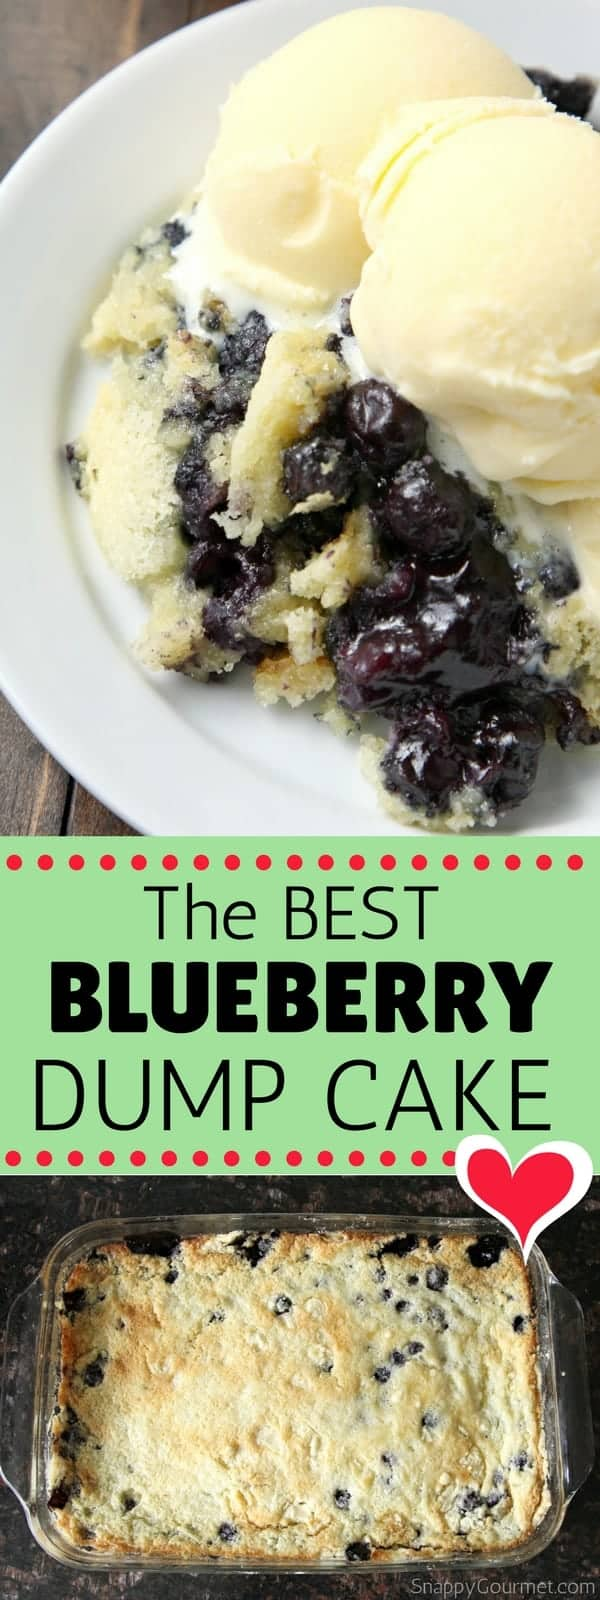 Blueberry Dump Cake Recipe - how to make a blueberry dump cake